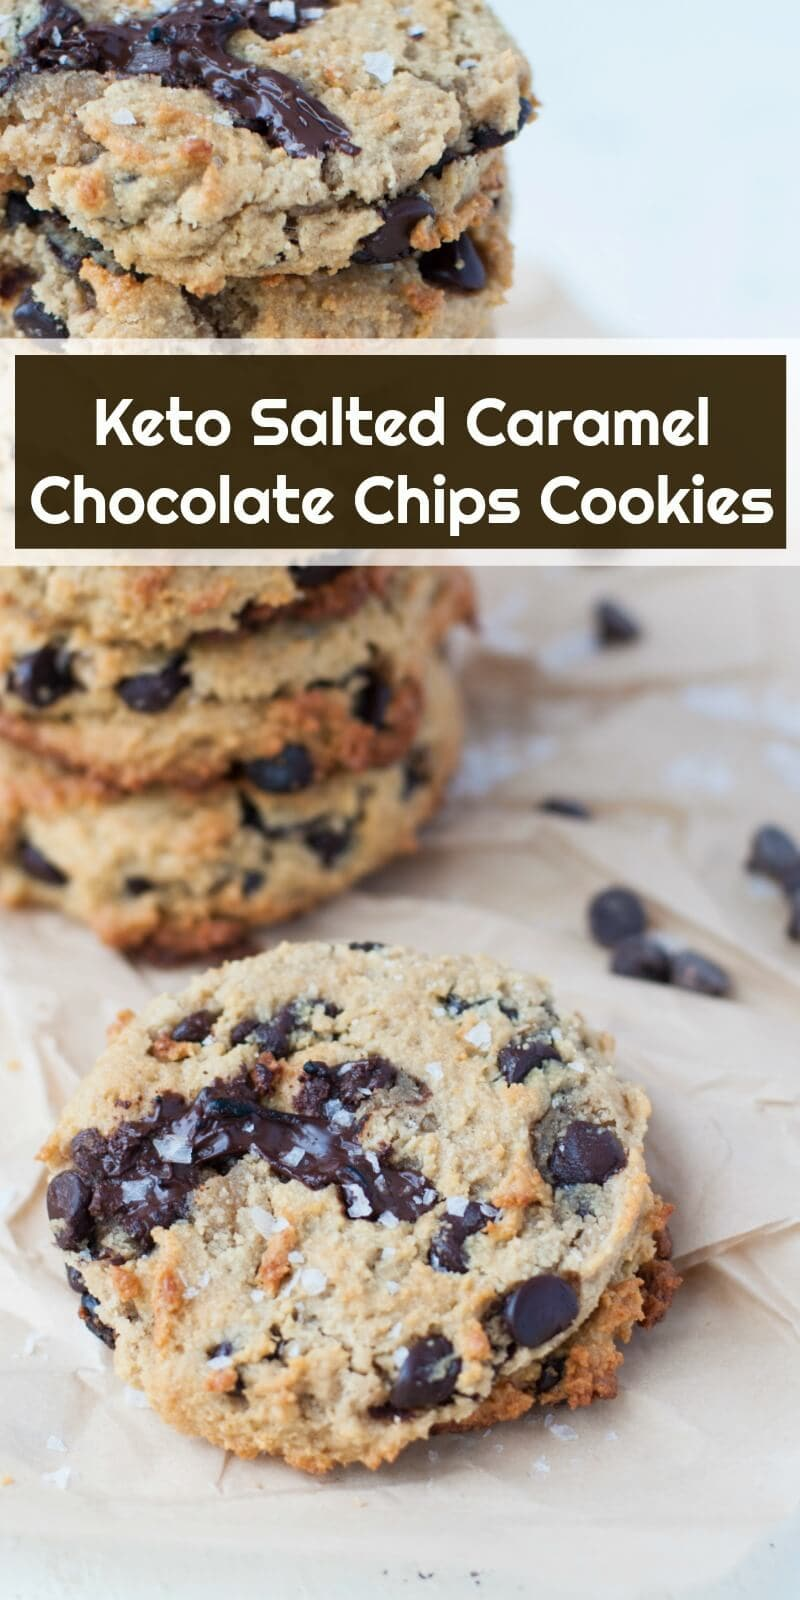 Keto Salted Caramel Chocolate Chip Cookies | Peace Love and Low Carb   #keto #ketogenic #lowcarb #cookies #glutenfree #sugarfree